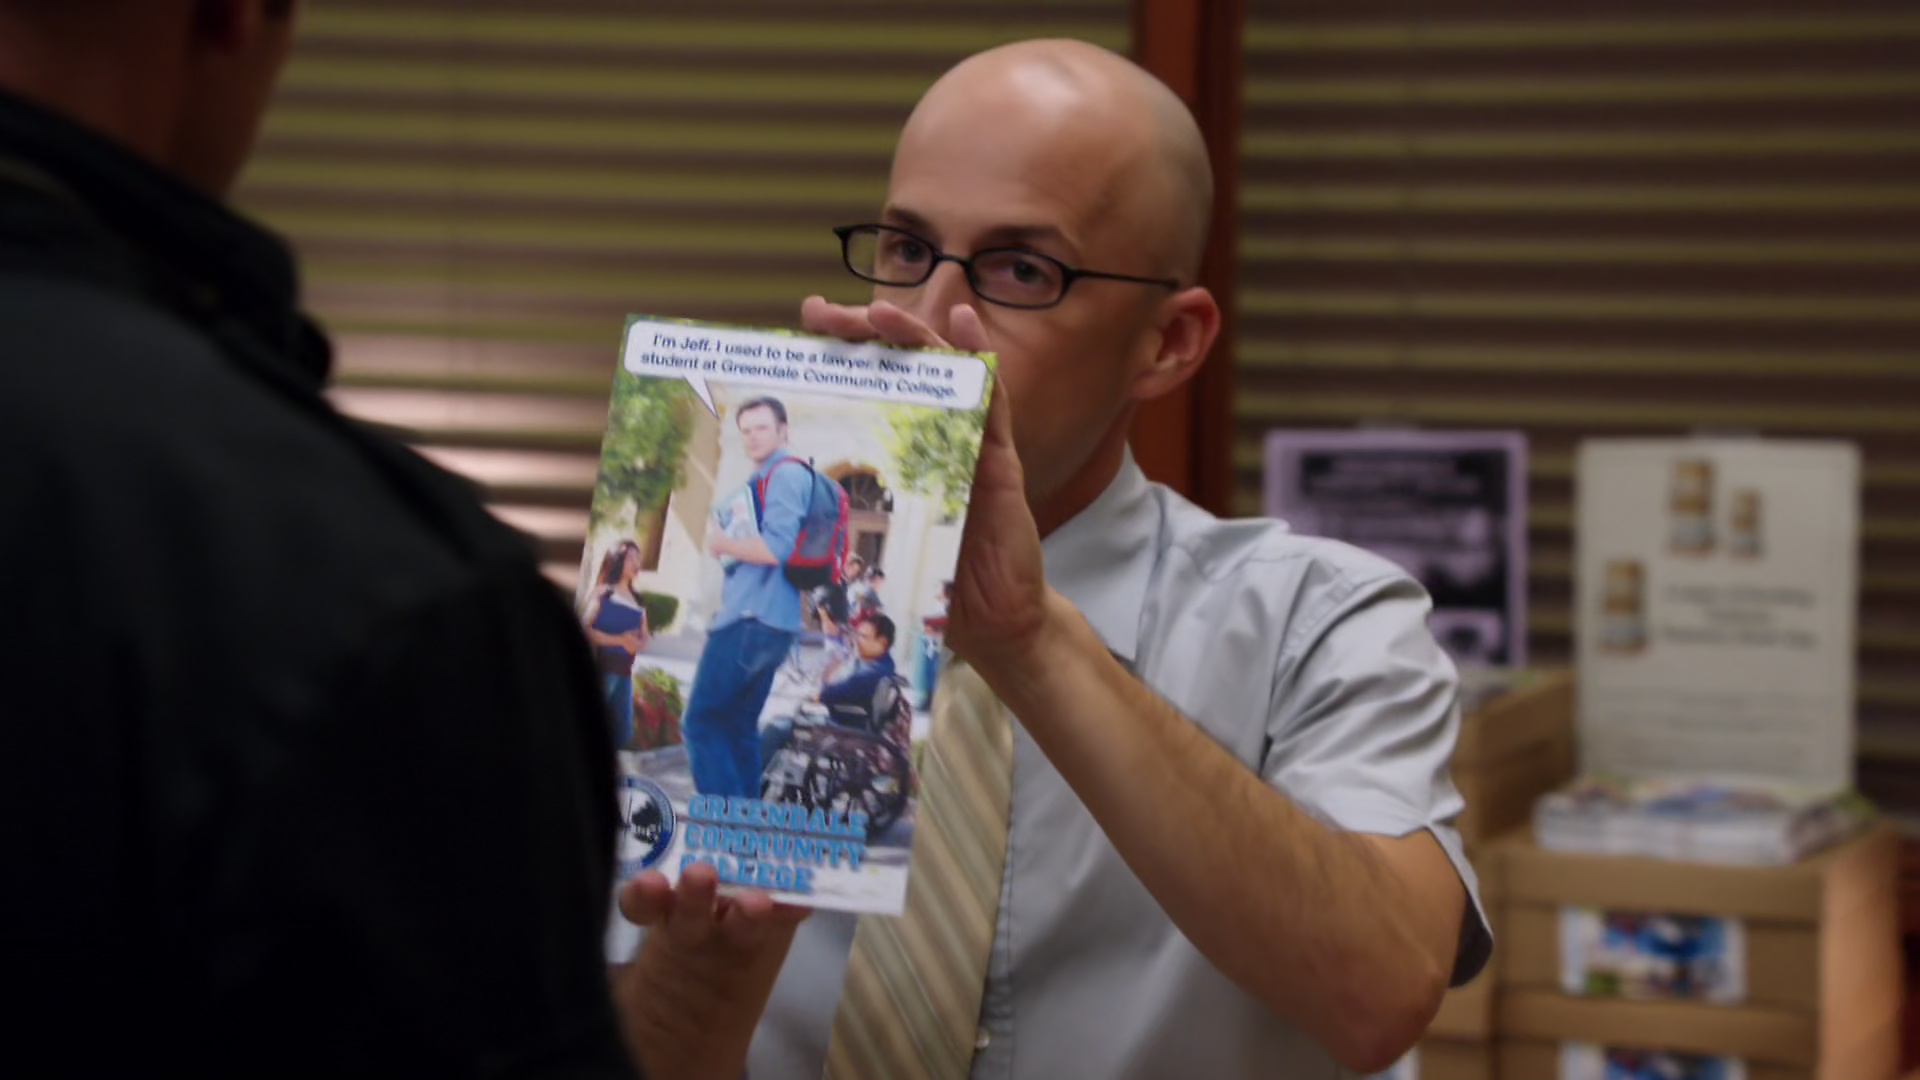 File:1x06-Dean Pelton Jeff Flyer.jpg